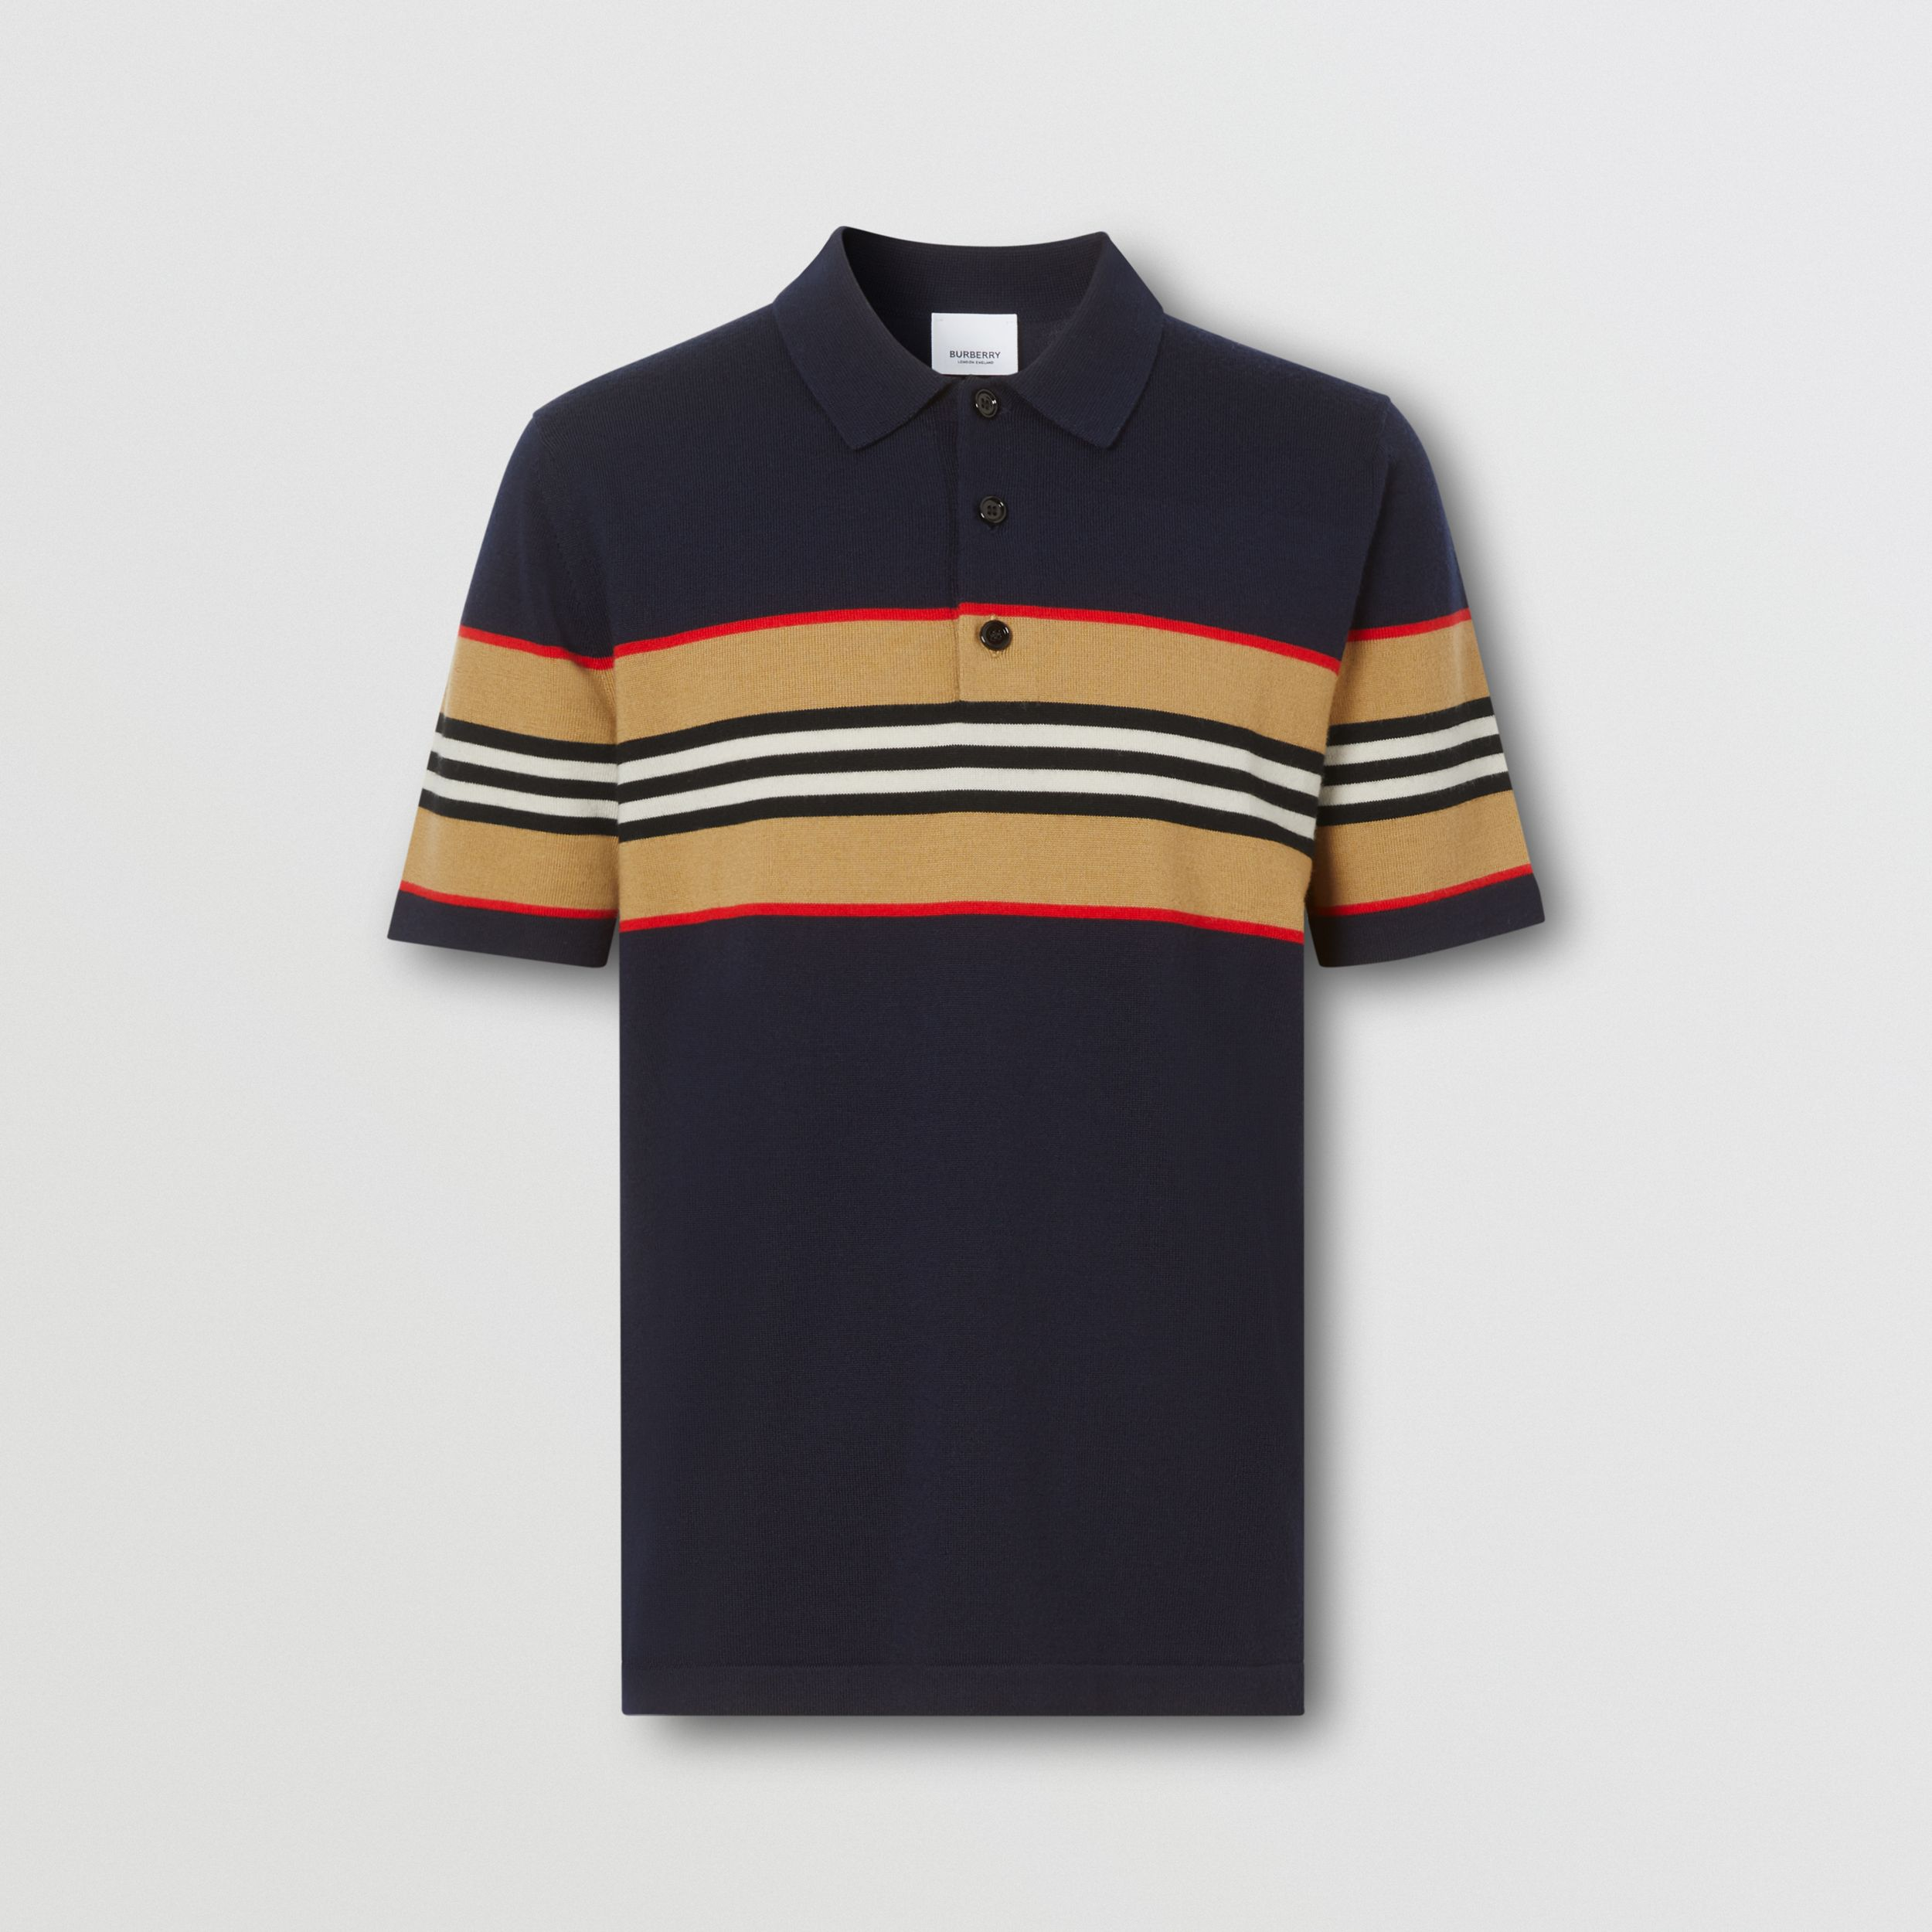 Icon Stripe Detail Merino Wool Polo Shirt in Navy - Men | Burberry - 4